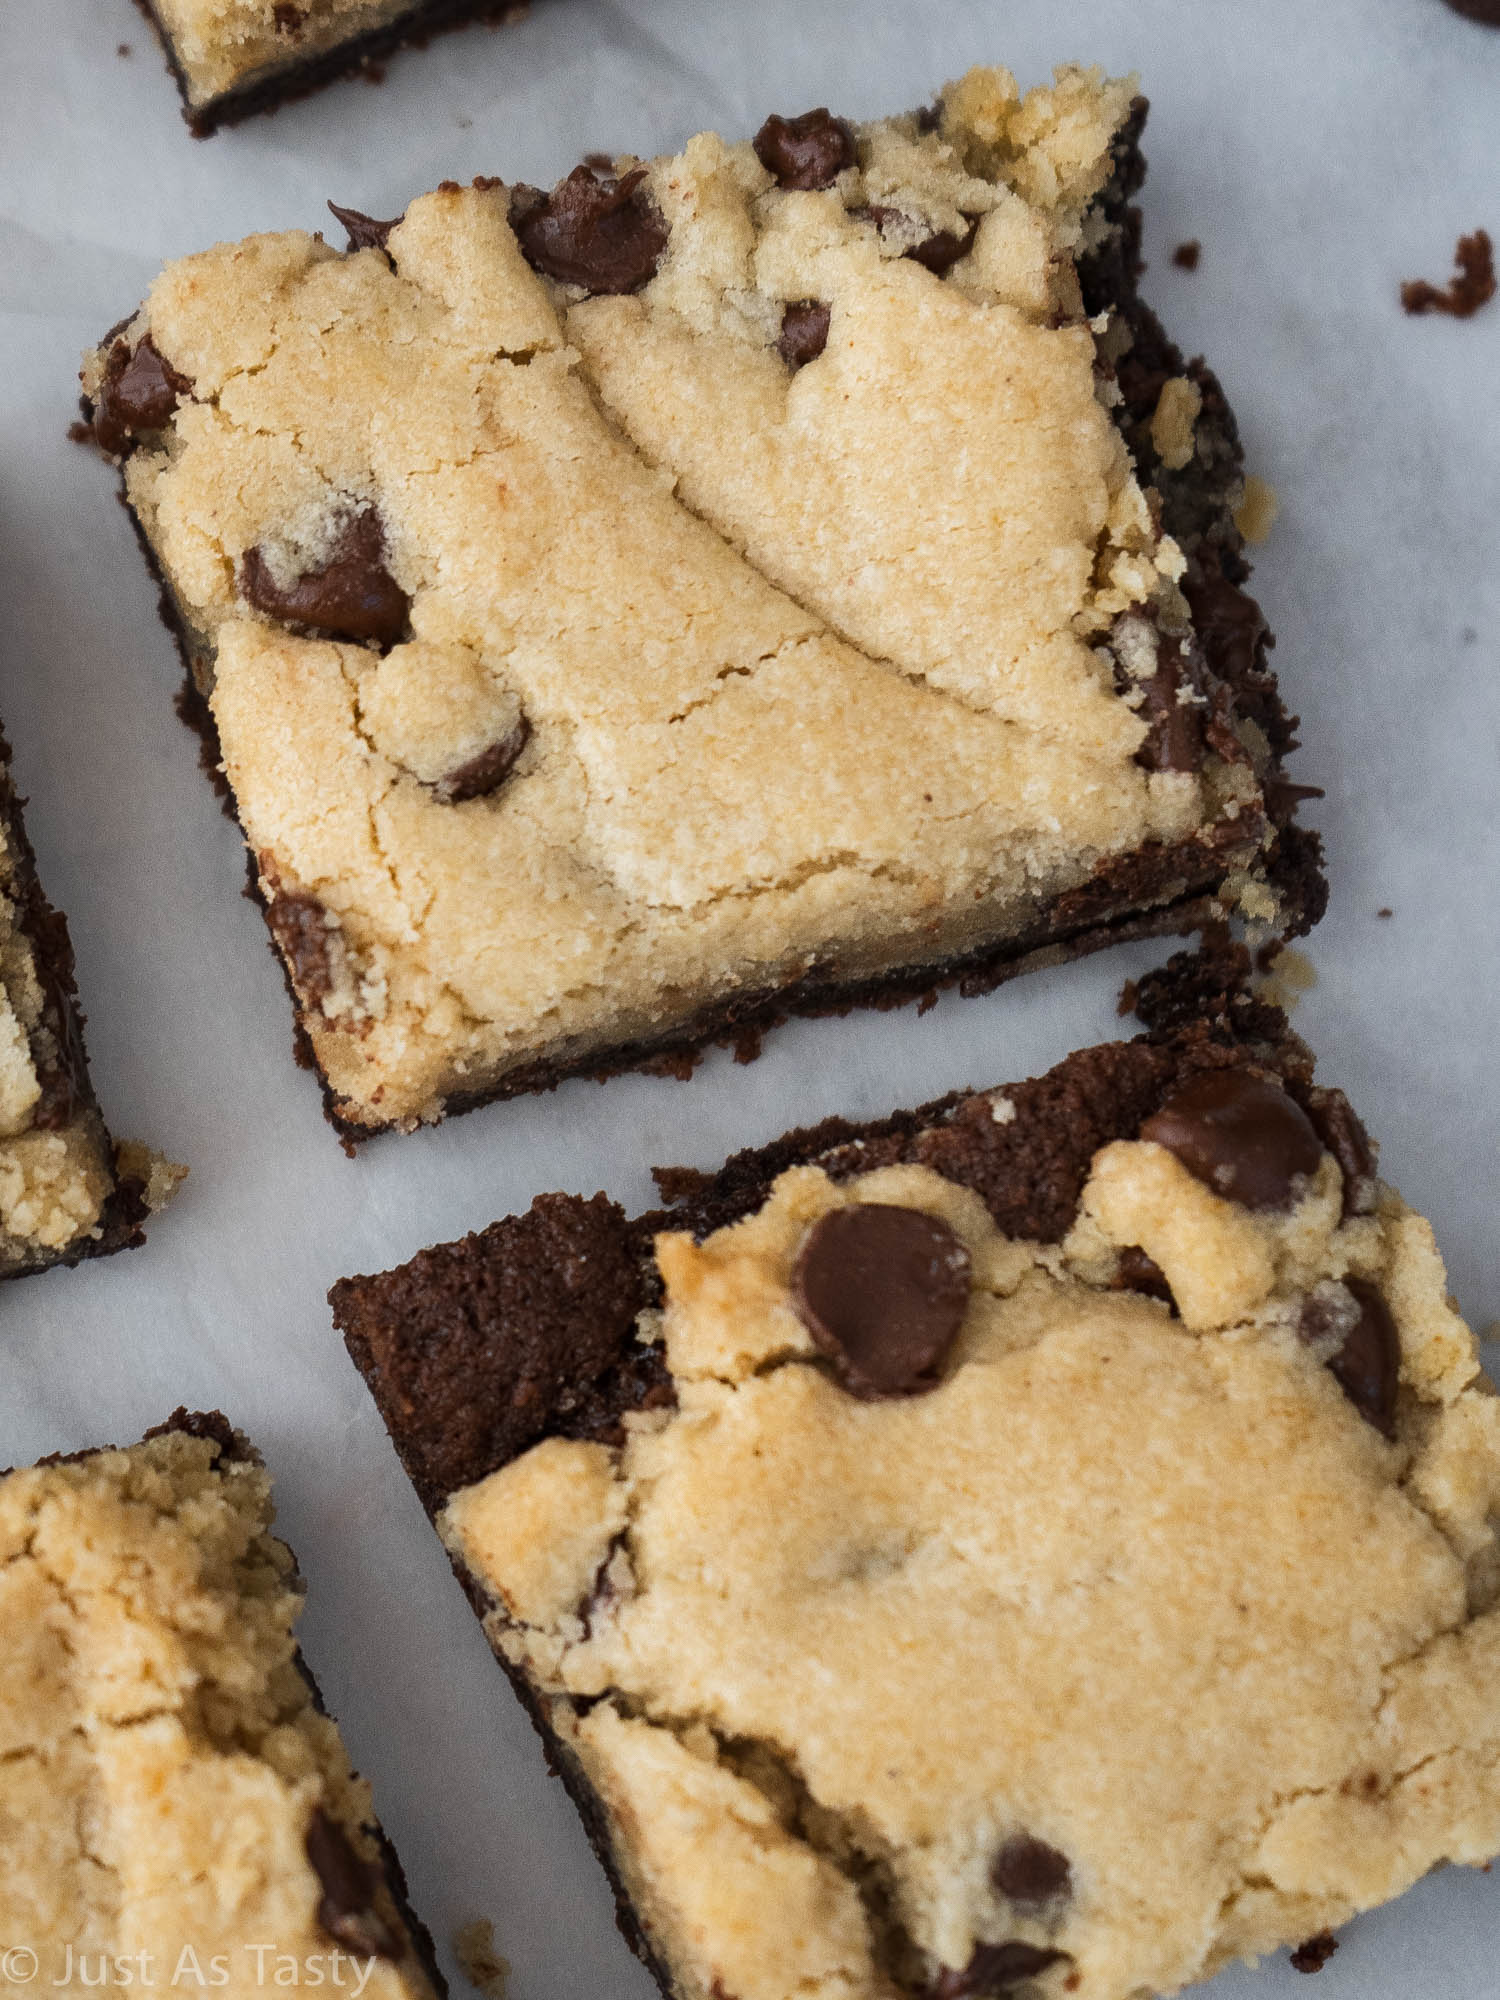 Close-up of a chocolate chip cookie brownie bar.